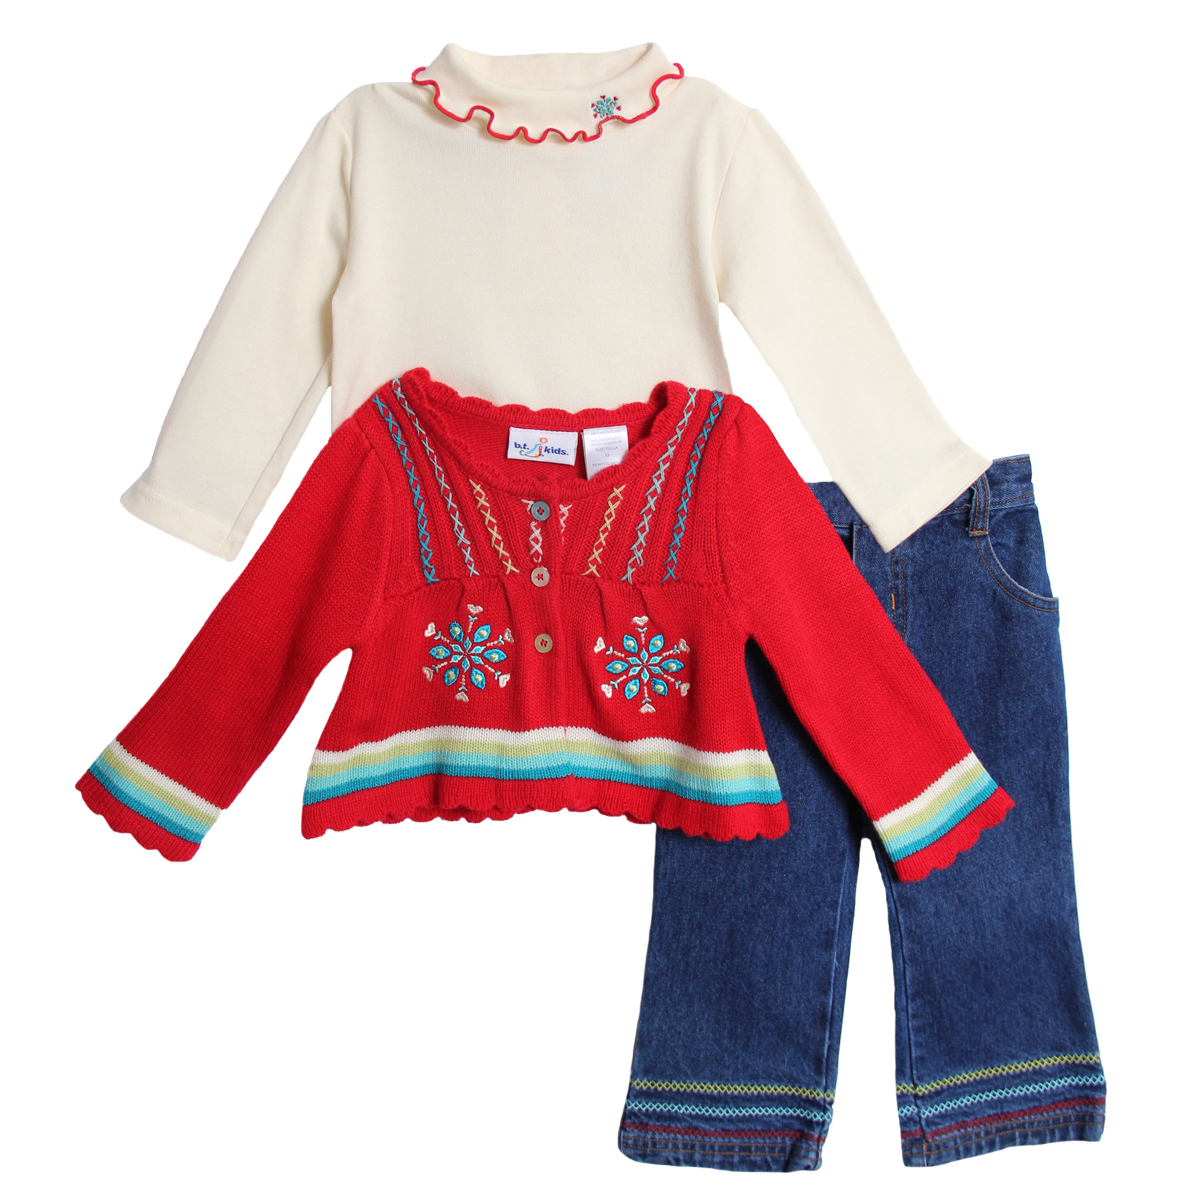 B.T. Kids Infant Baby Girls 3 Piece Red Winter Sweater Turtleneck Jeans Pants Set at Sears.com